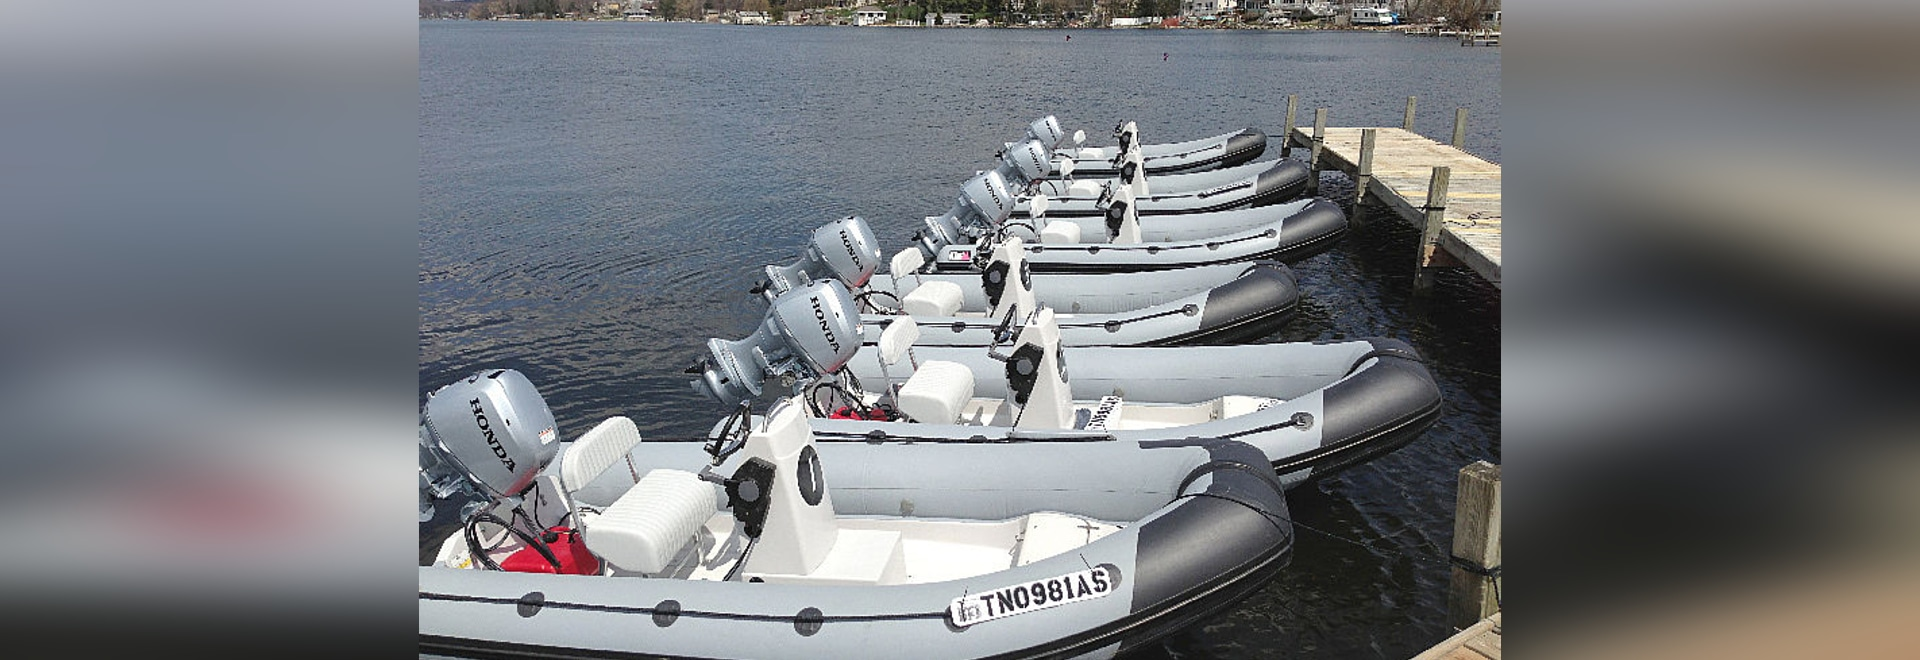 Inflatable boat with fibergalss hull, from 3 meter to 5.2 meter, 10 feet to17 feet